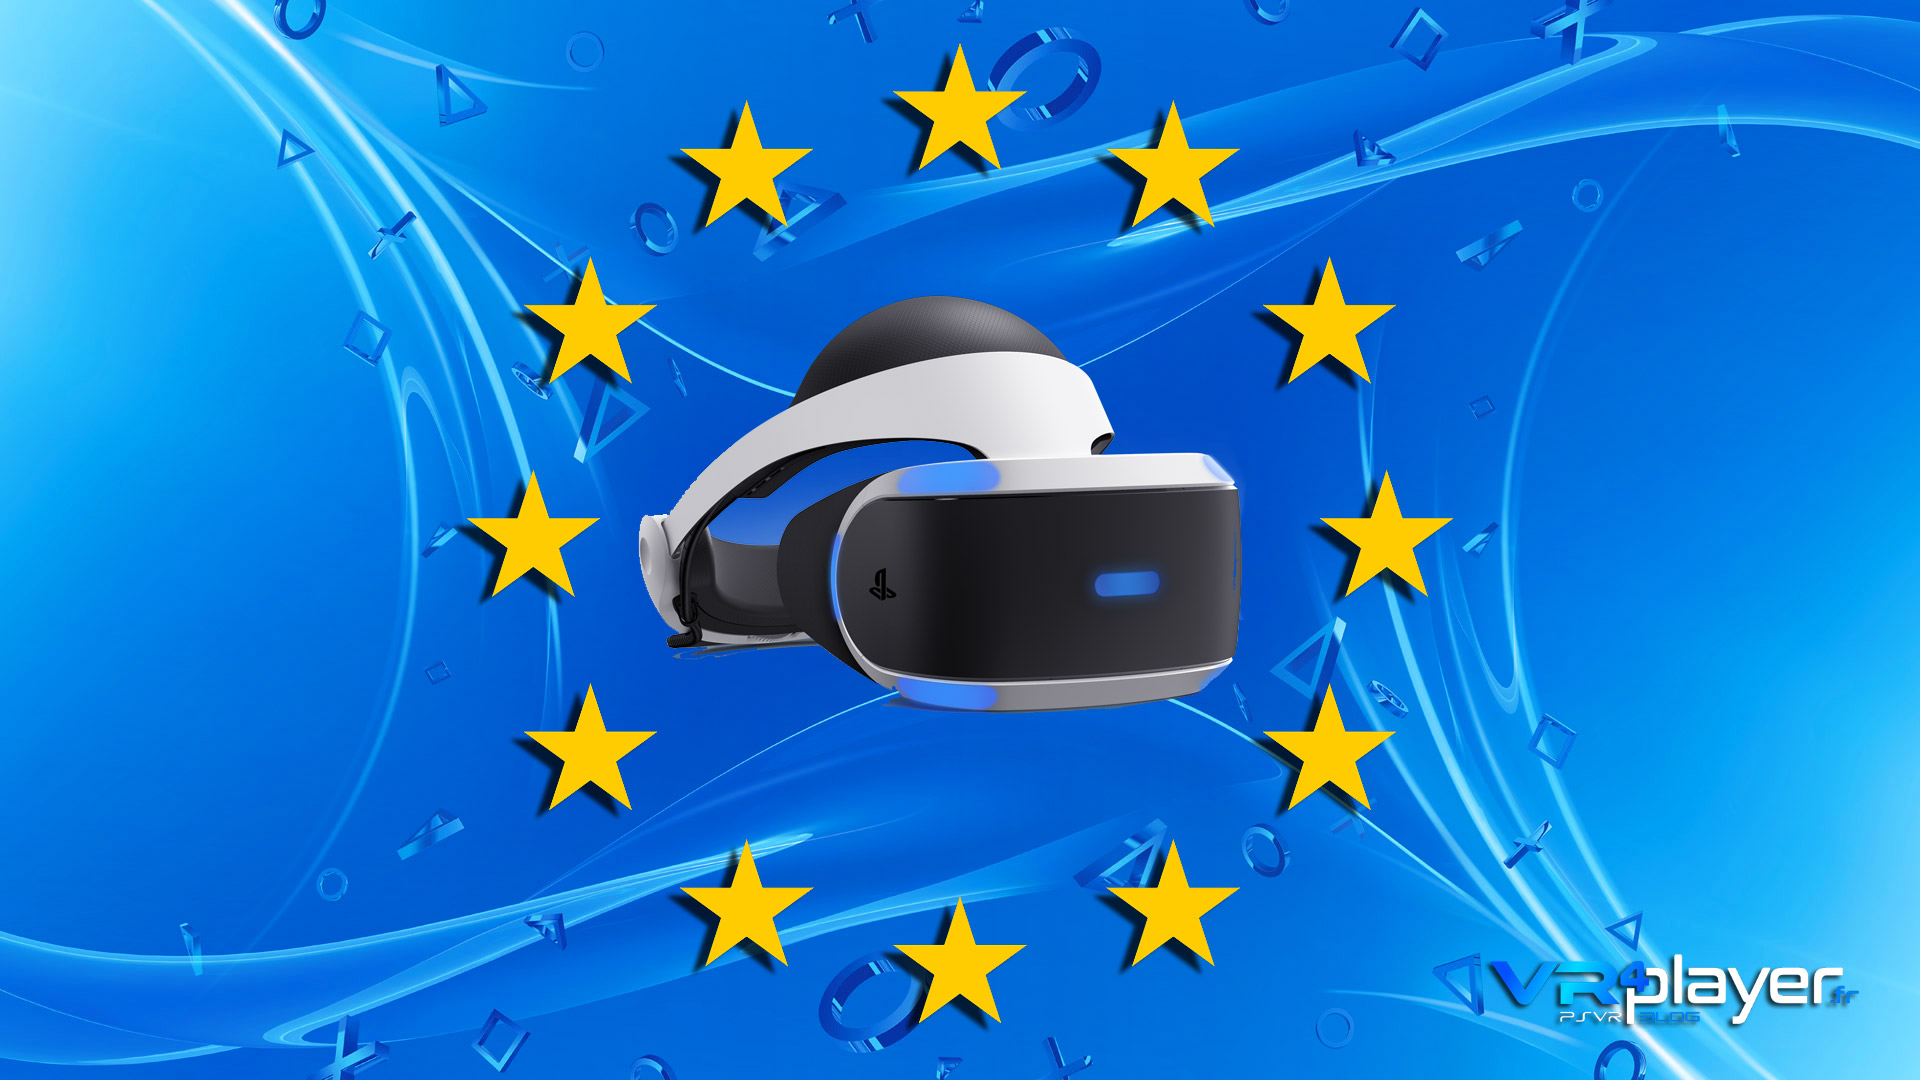 Le PSVR en Europe vrplayer.fr